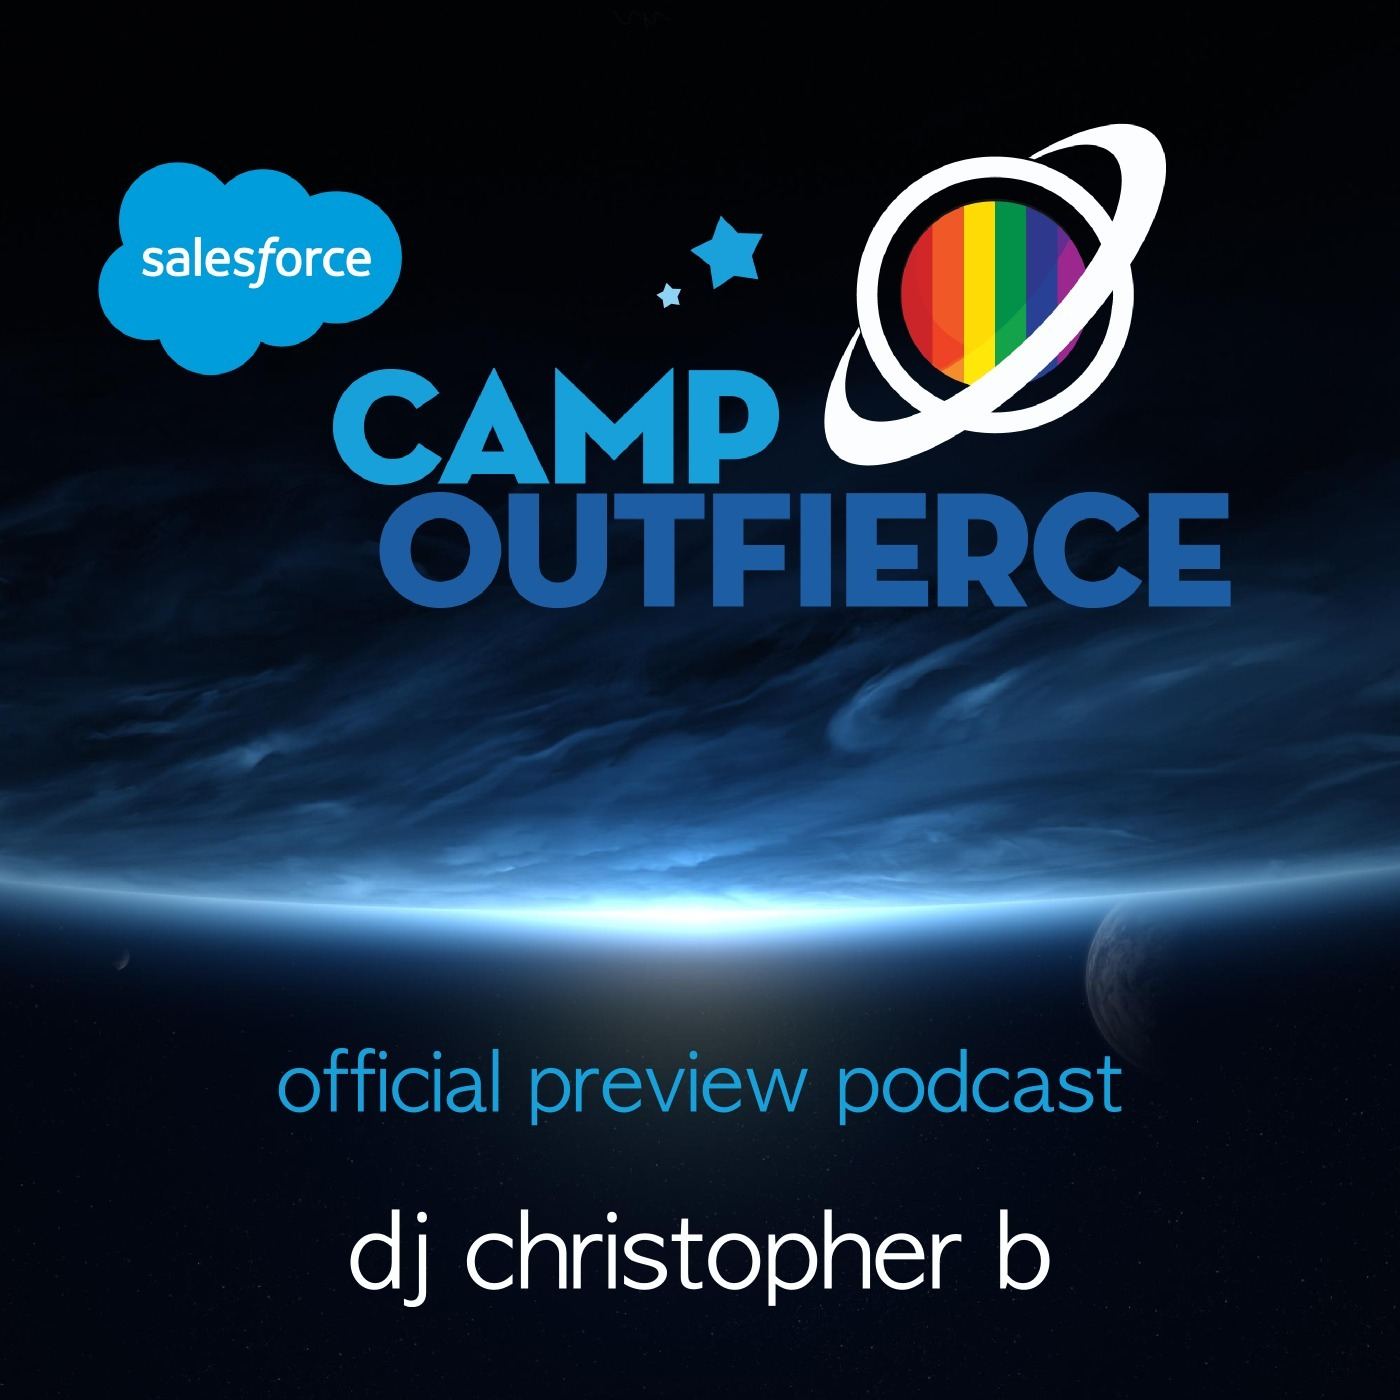 CAMP OUTFIERCE Dj Christopher B podcast